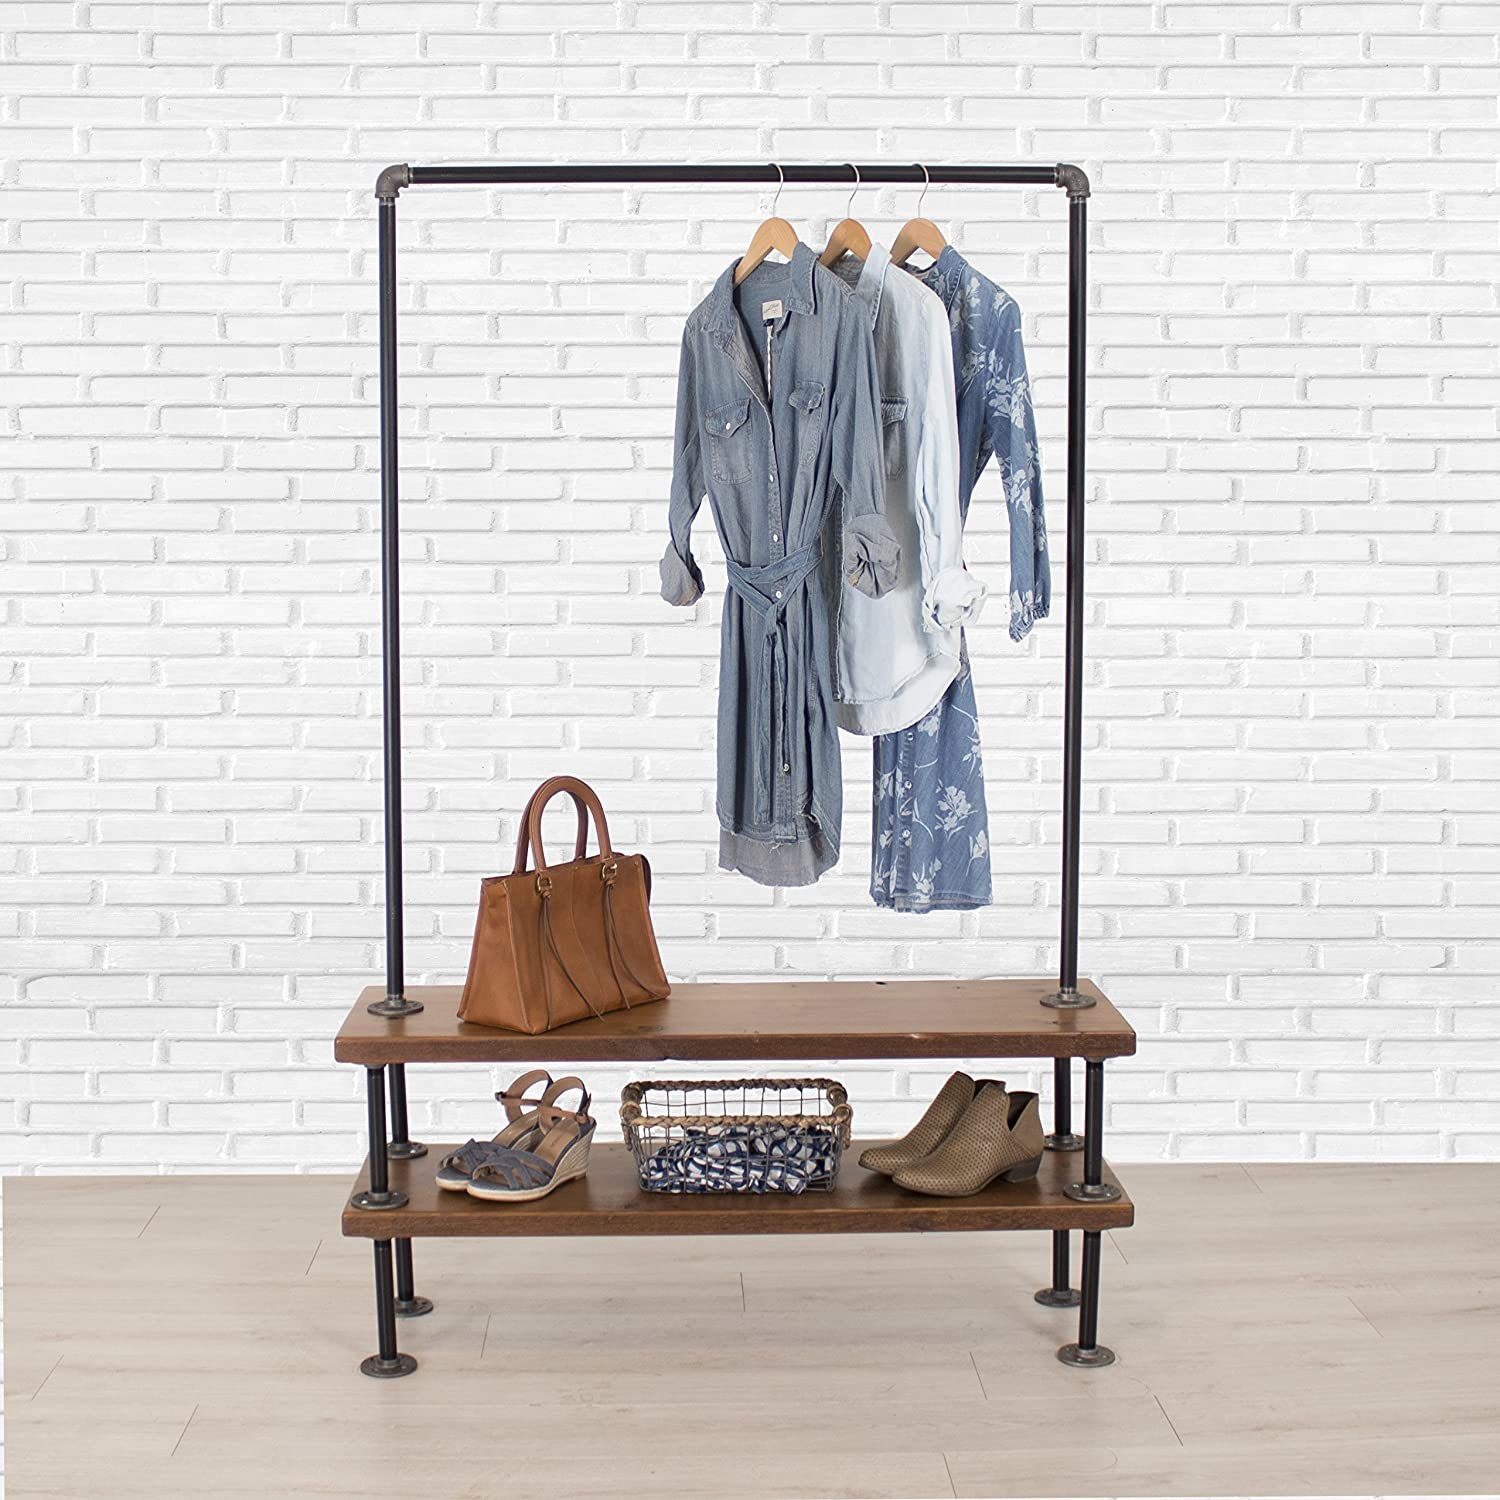 Industrial Pipe Clothing Rack with Cedar Wood Shelves by William Robert's Vintage